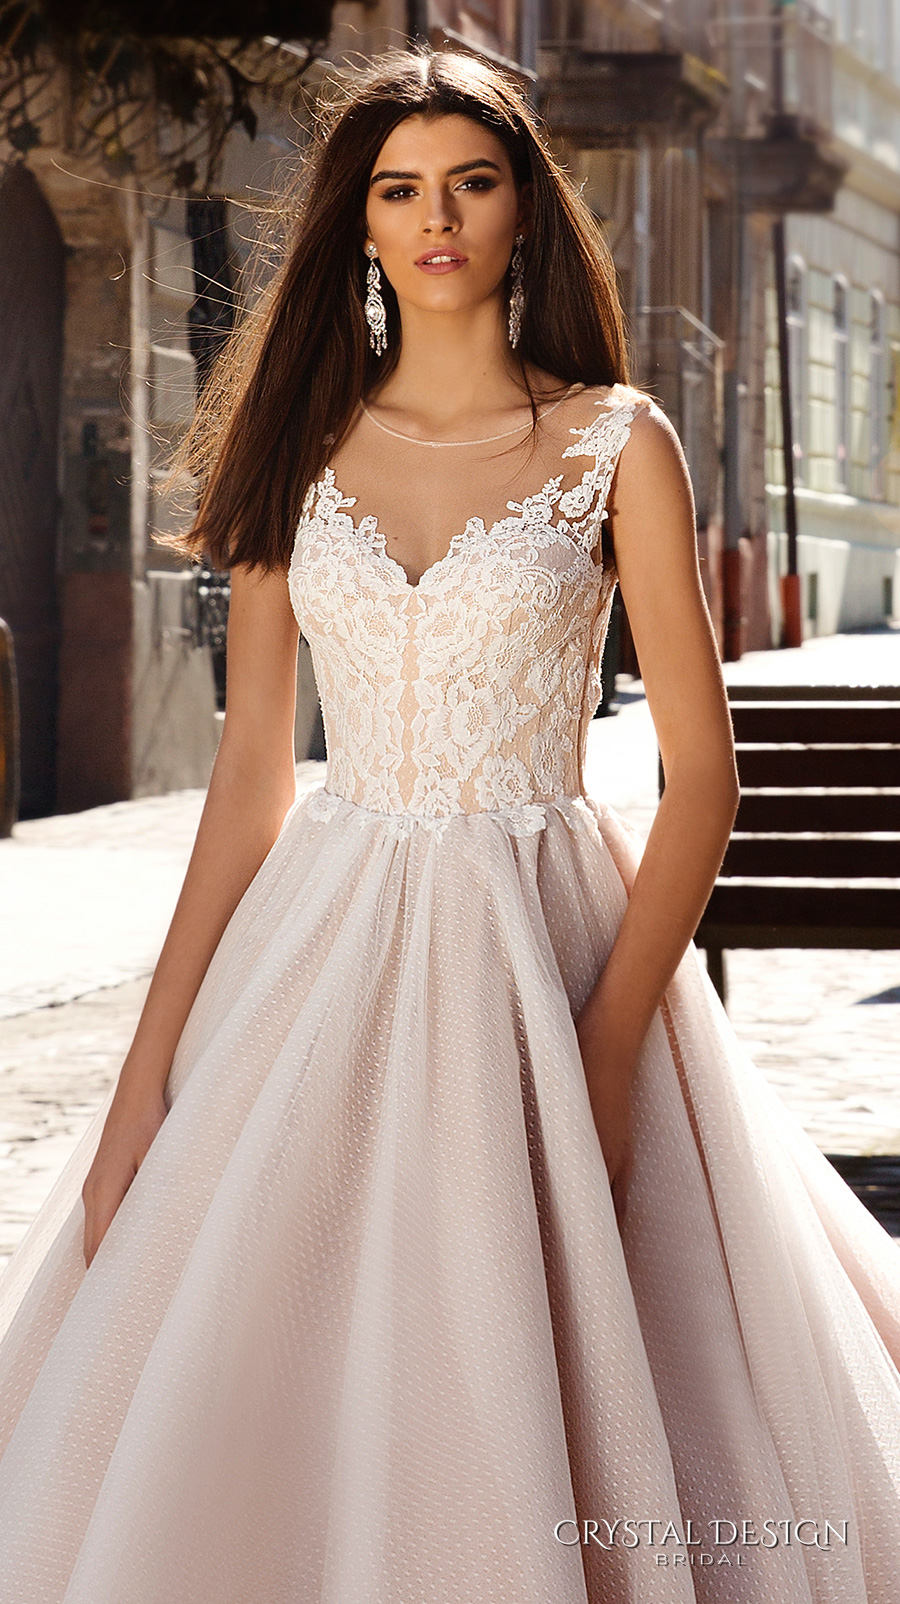 cc4686a971d crystal design bridal 2016 sleeveless illusion round neckline v neck lace  embellished bodice gorgeous princess ball